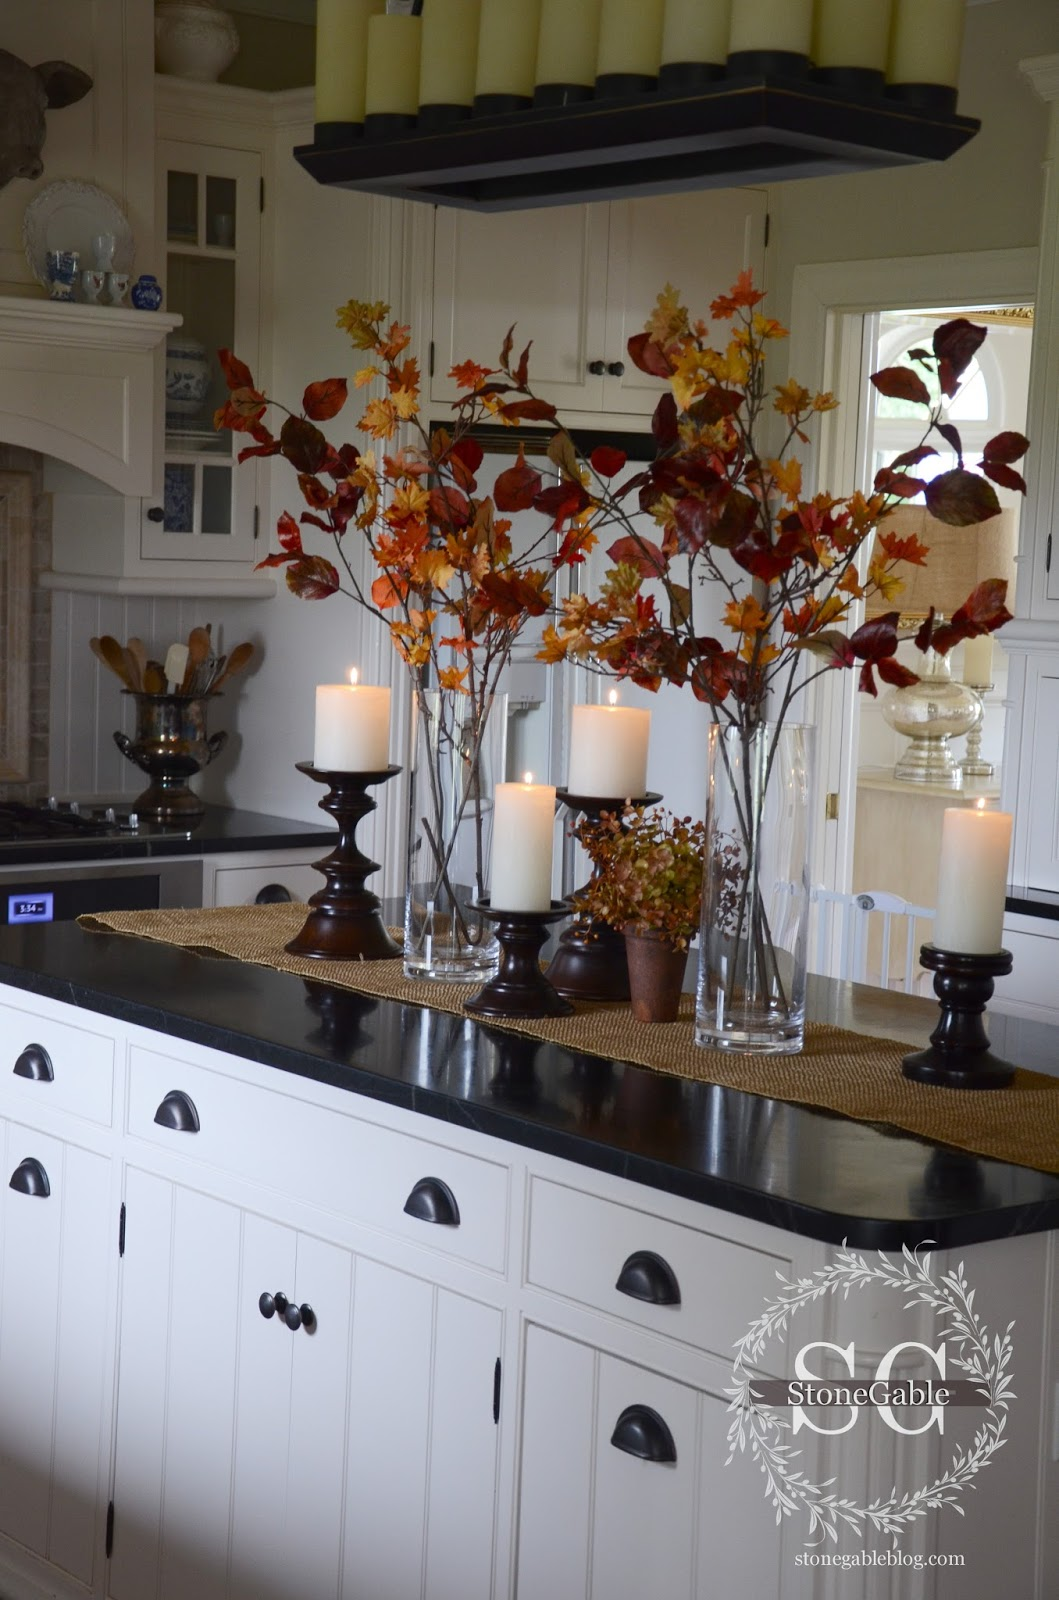 All about the details kitchen home tour stonegable for Small kitchen table centerpiece ideas